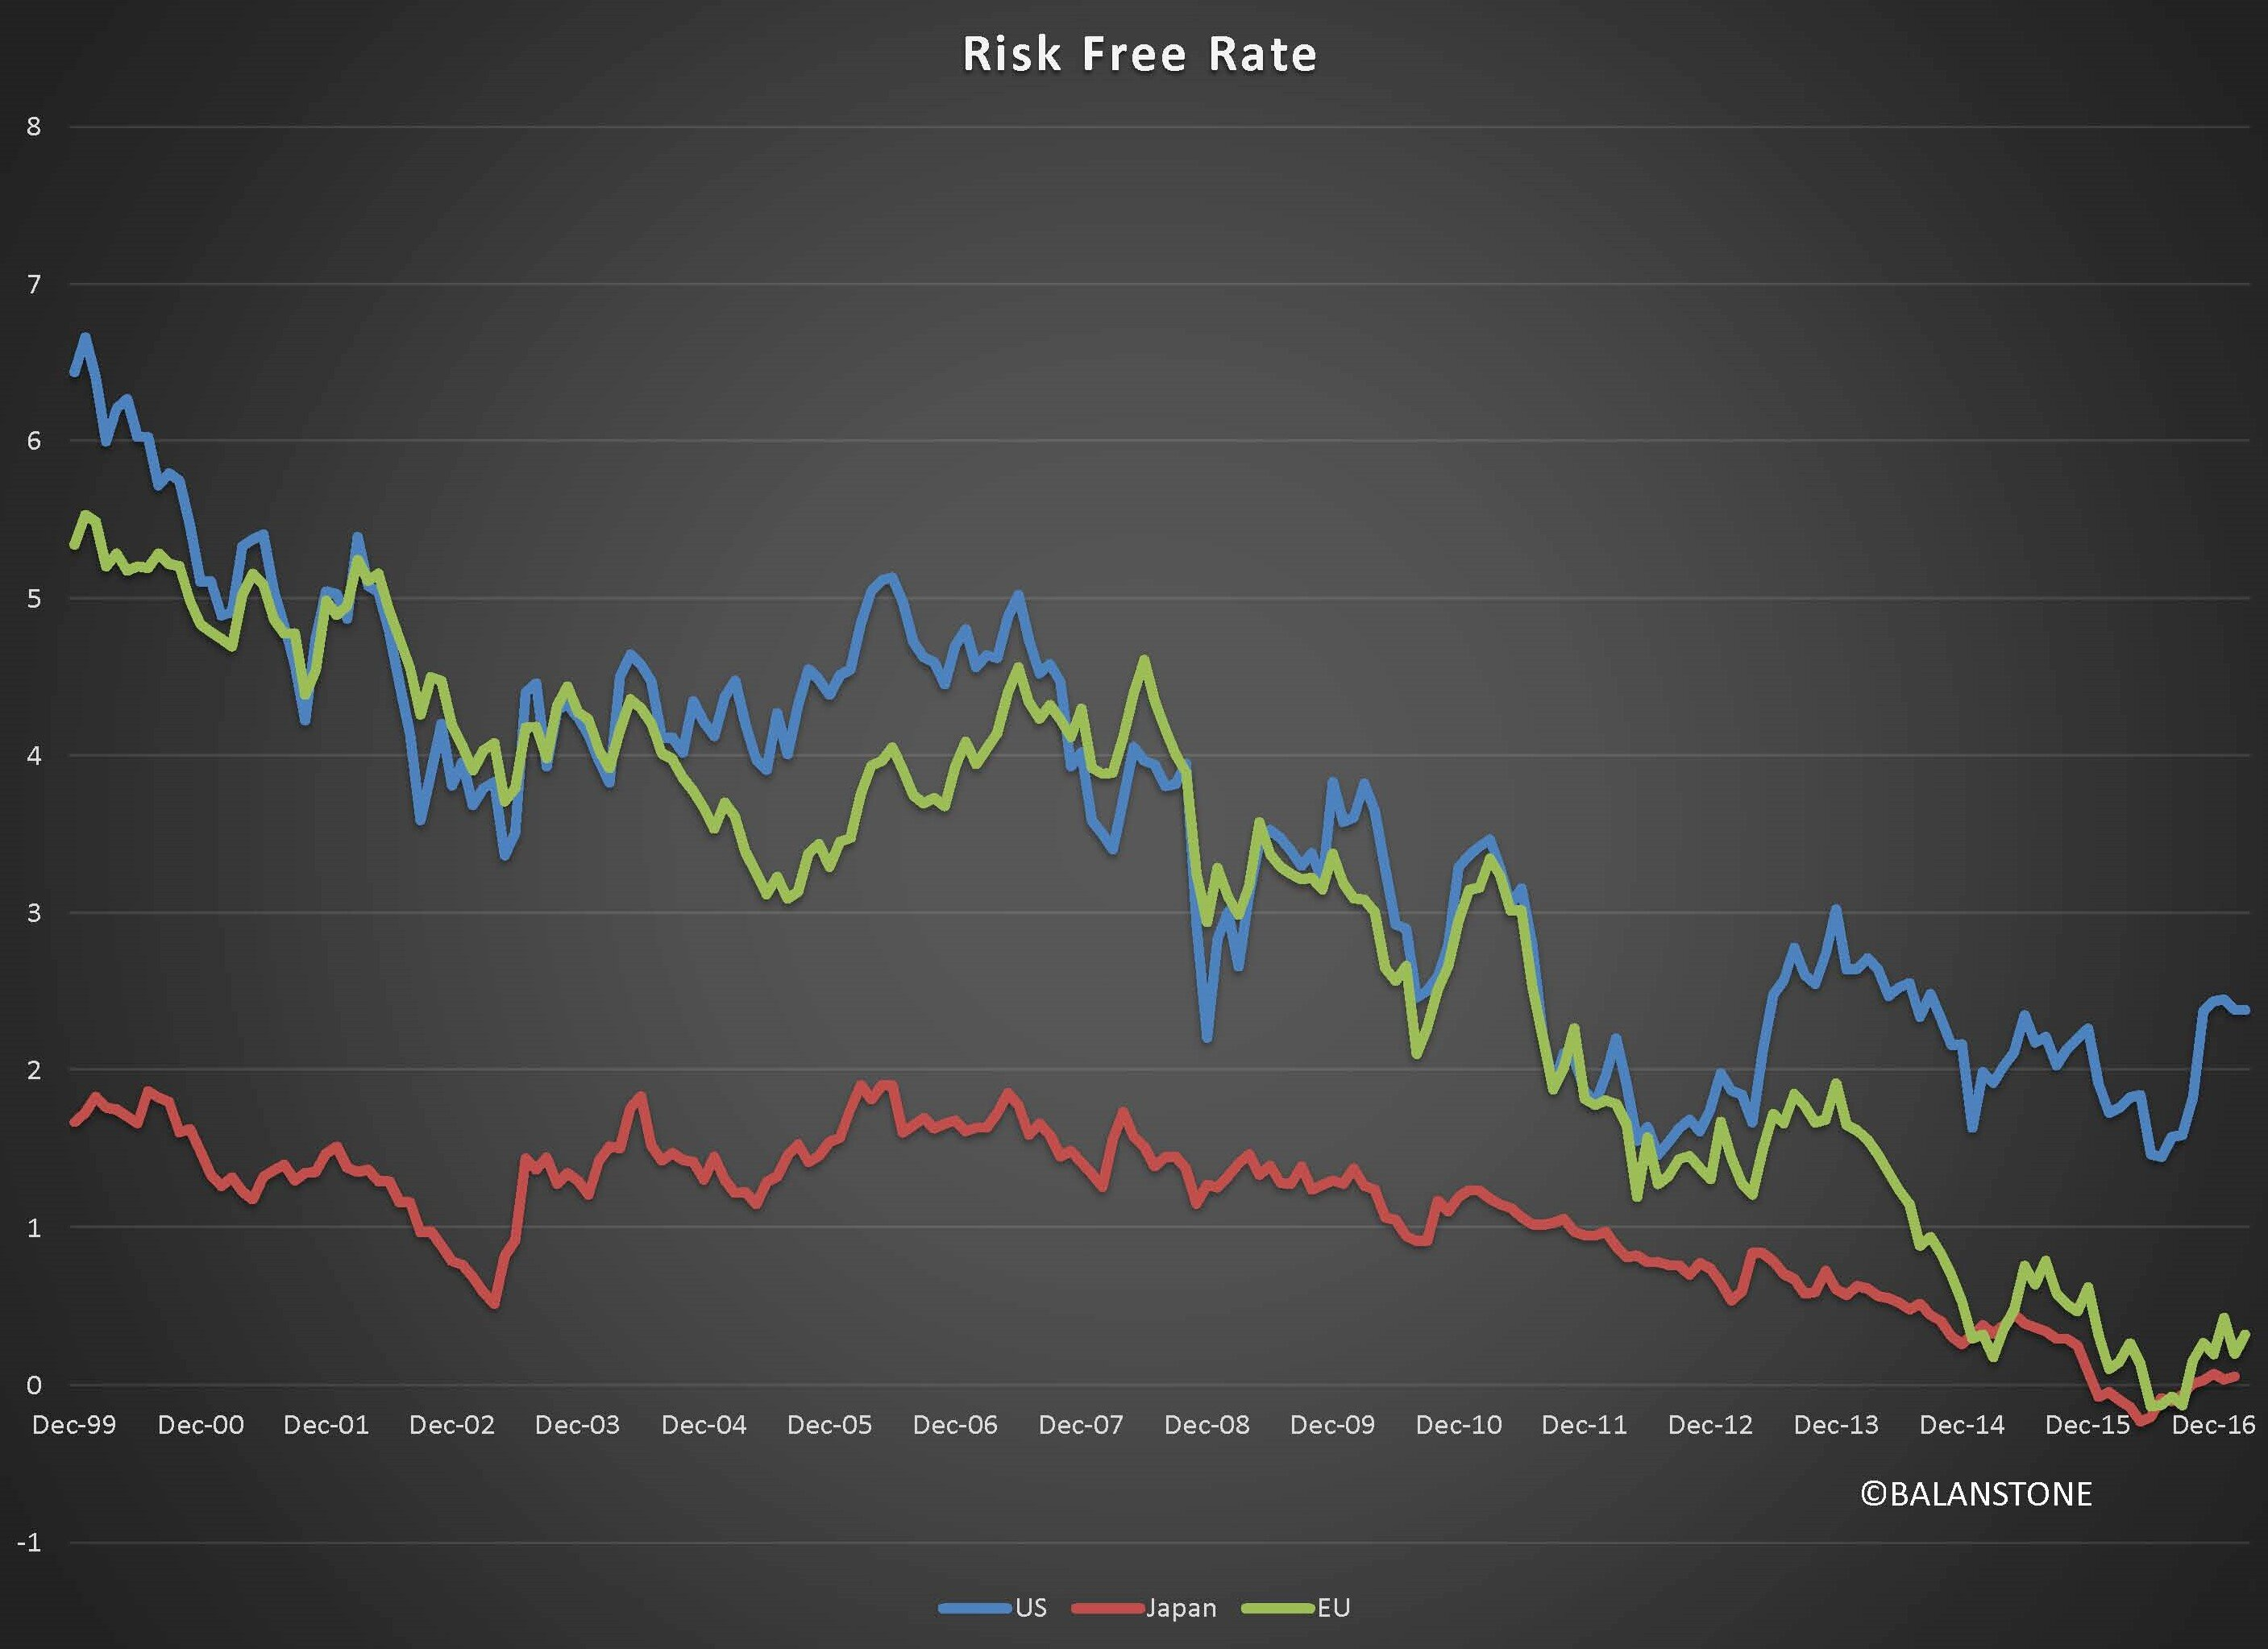 Risk Free Rate